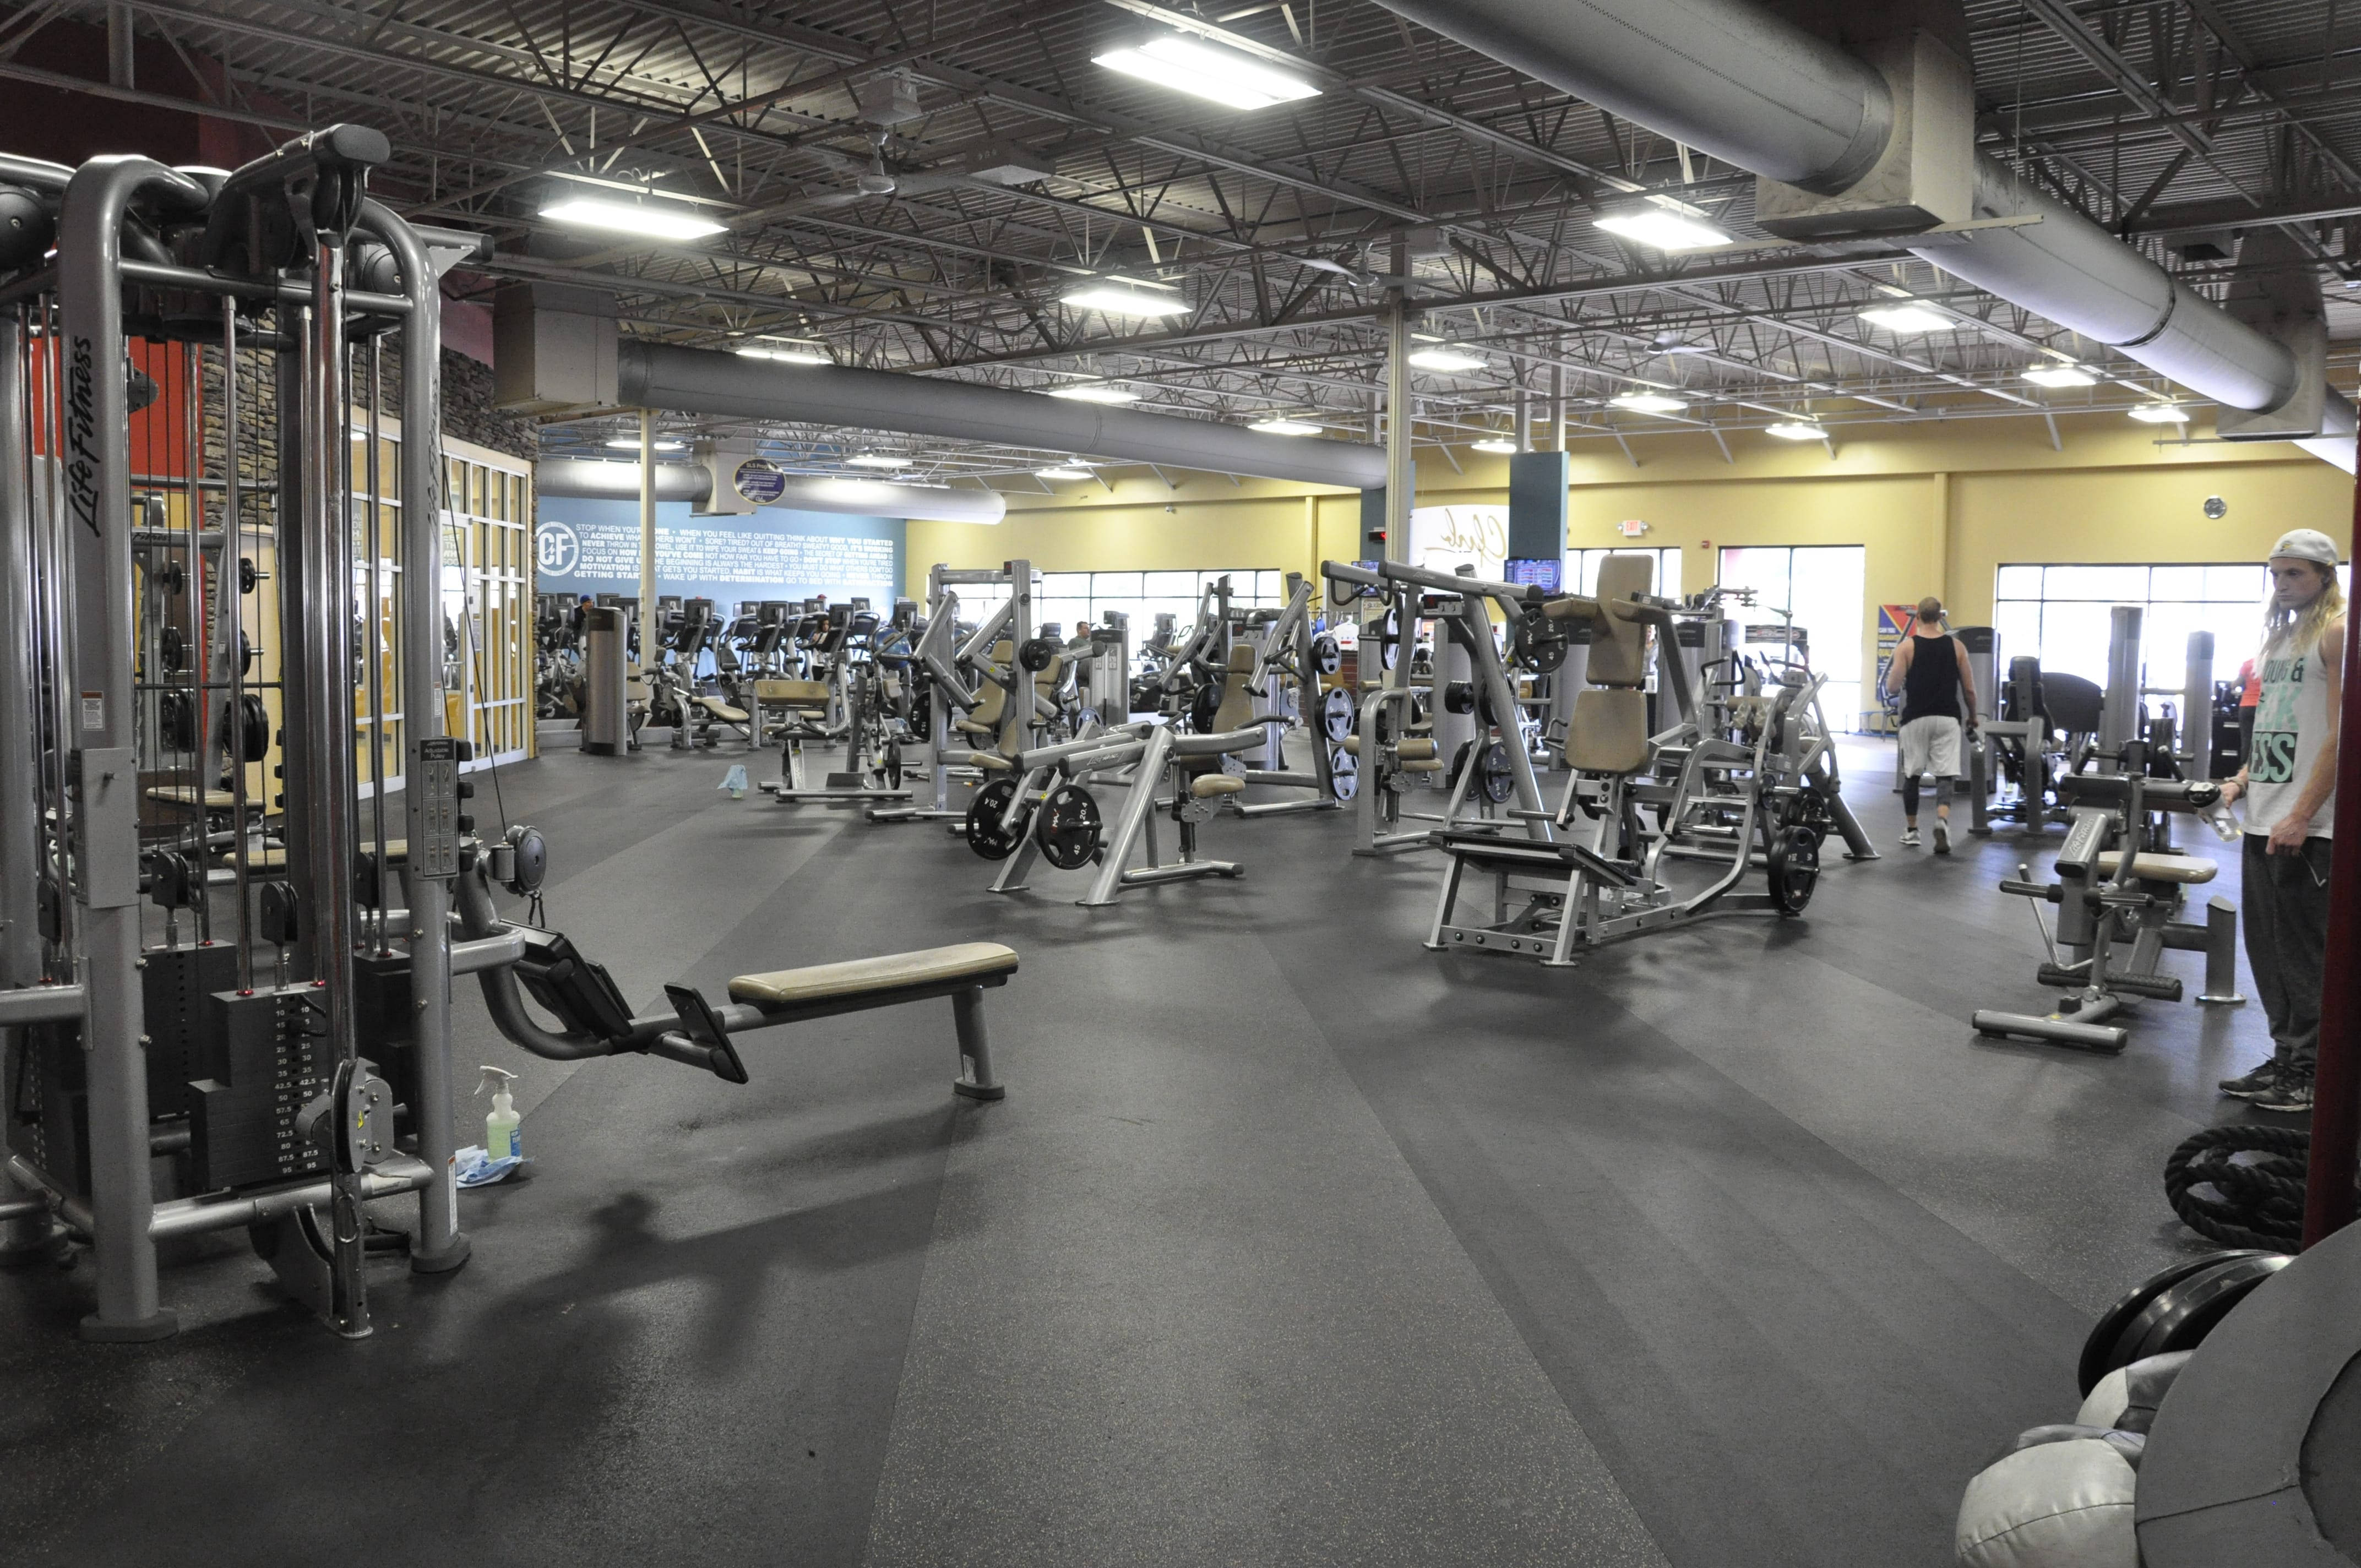 residential golds gym - HD4288×2848